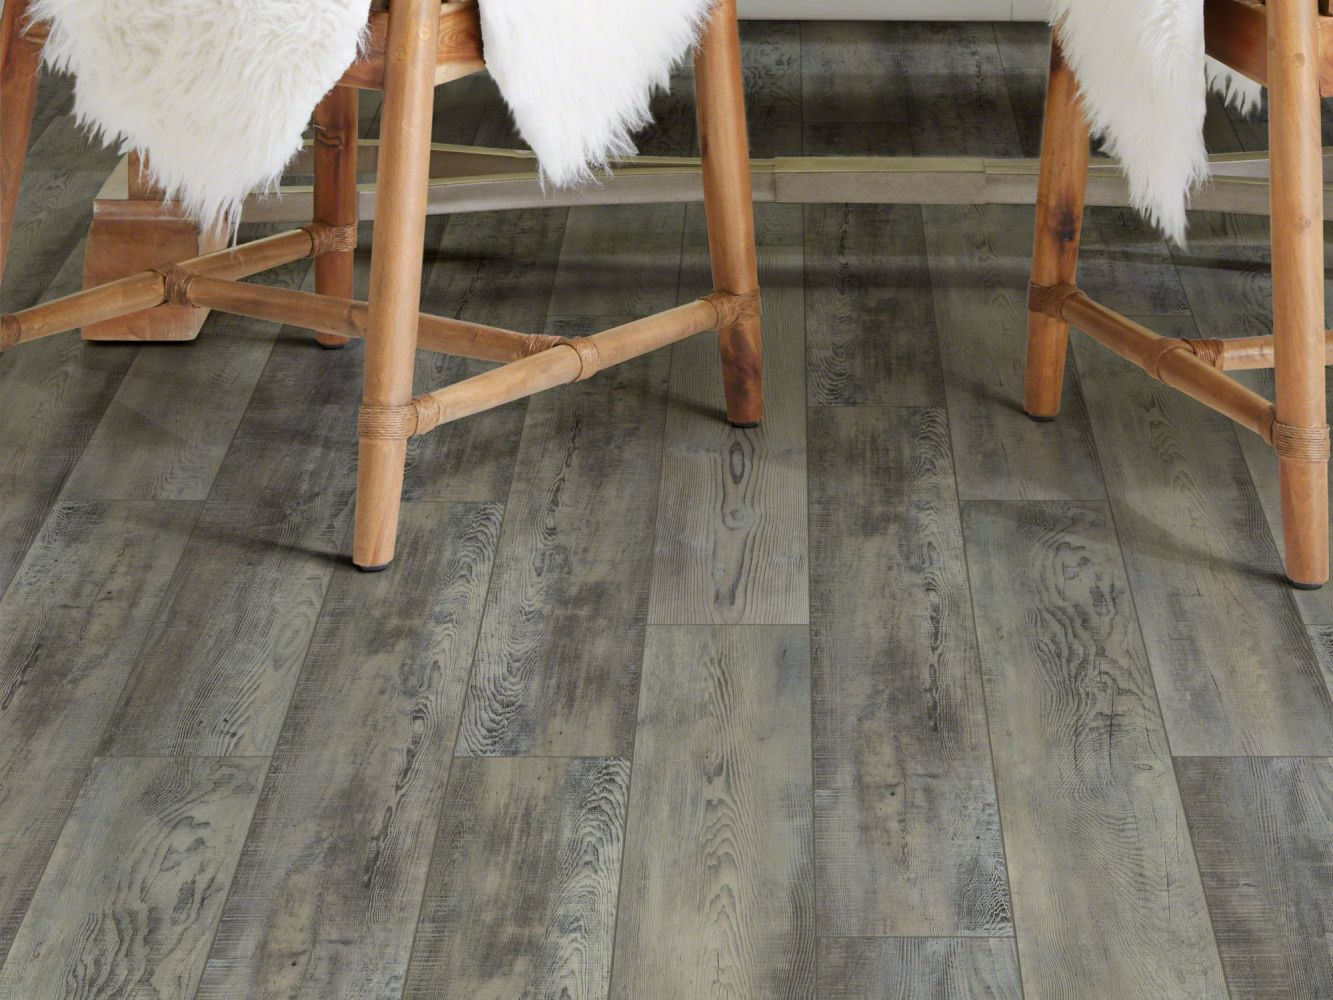 Shaw Floors Vinyl Residential Mountainside HD Calcare 00598_VH549